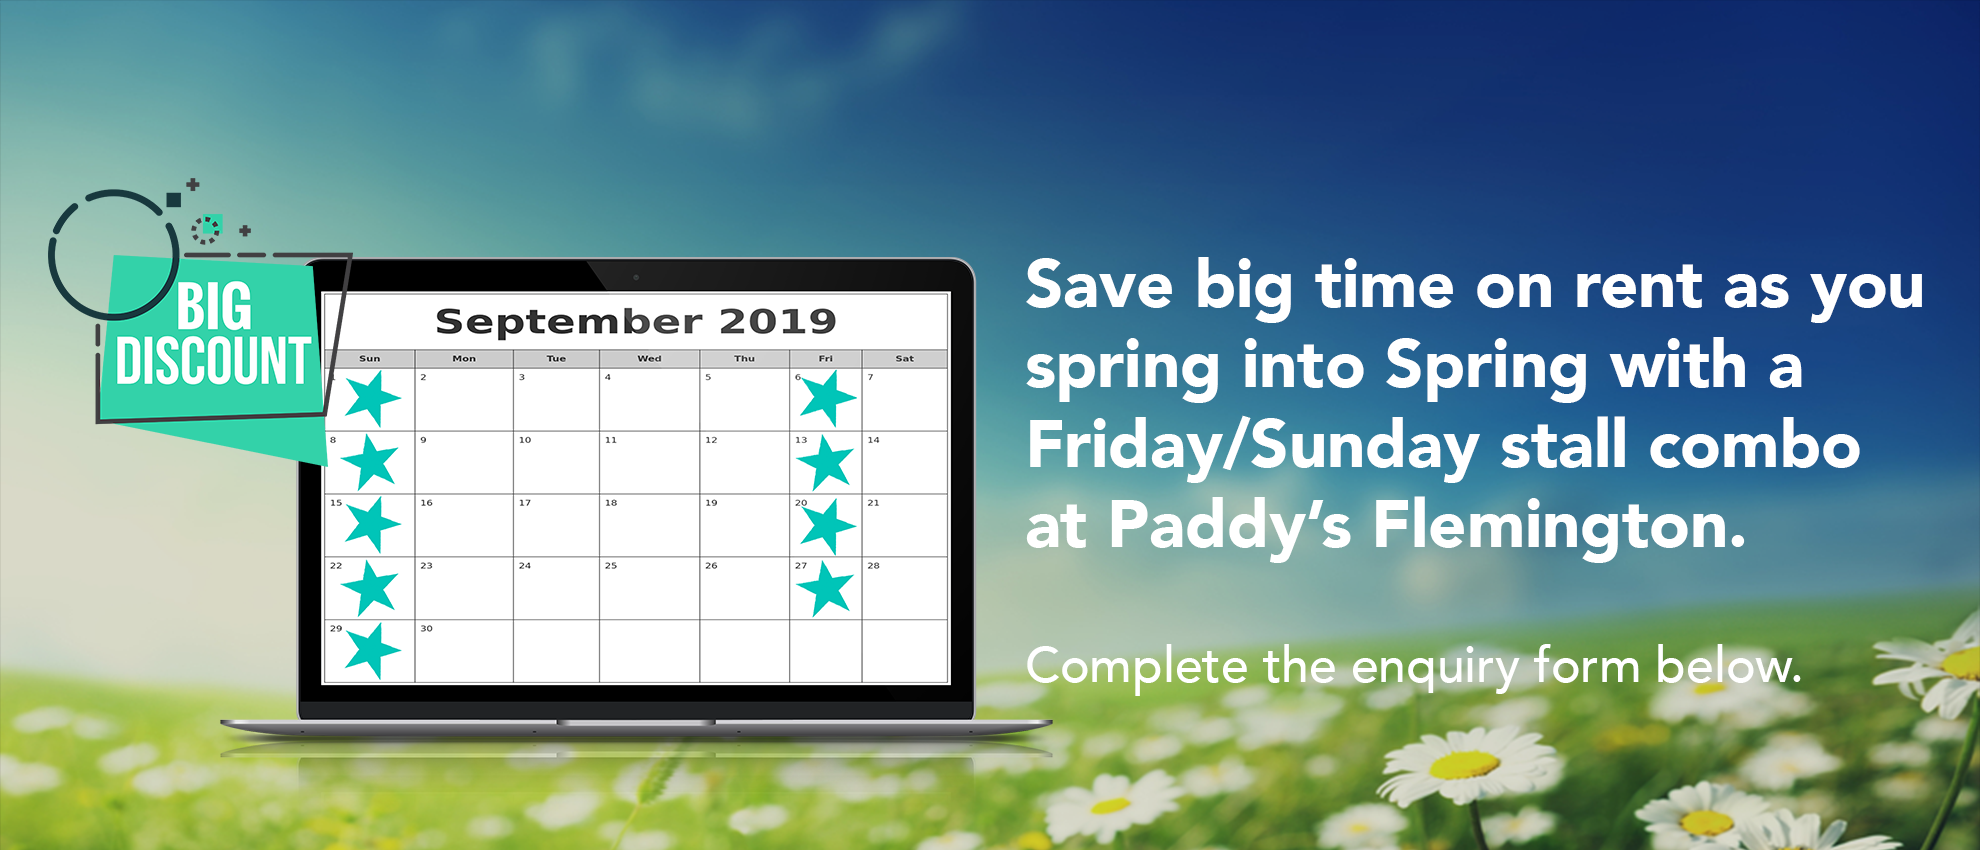 Save Rent In September 2018 at Paddy's Flemington